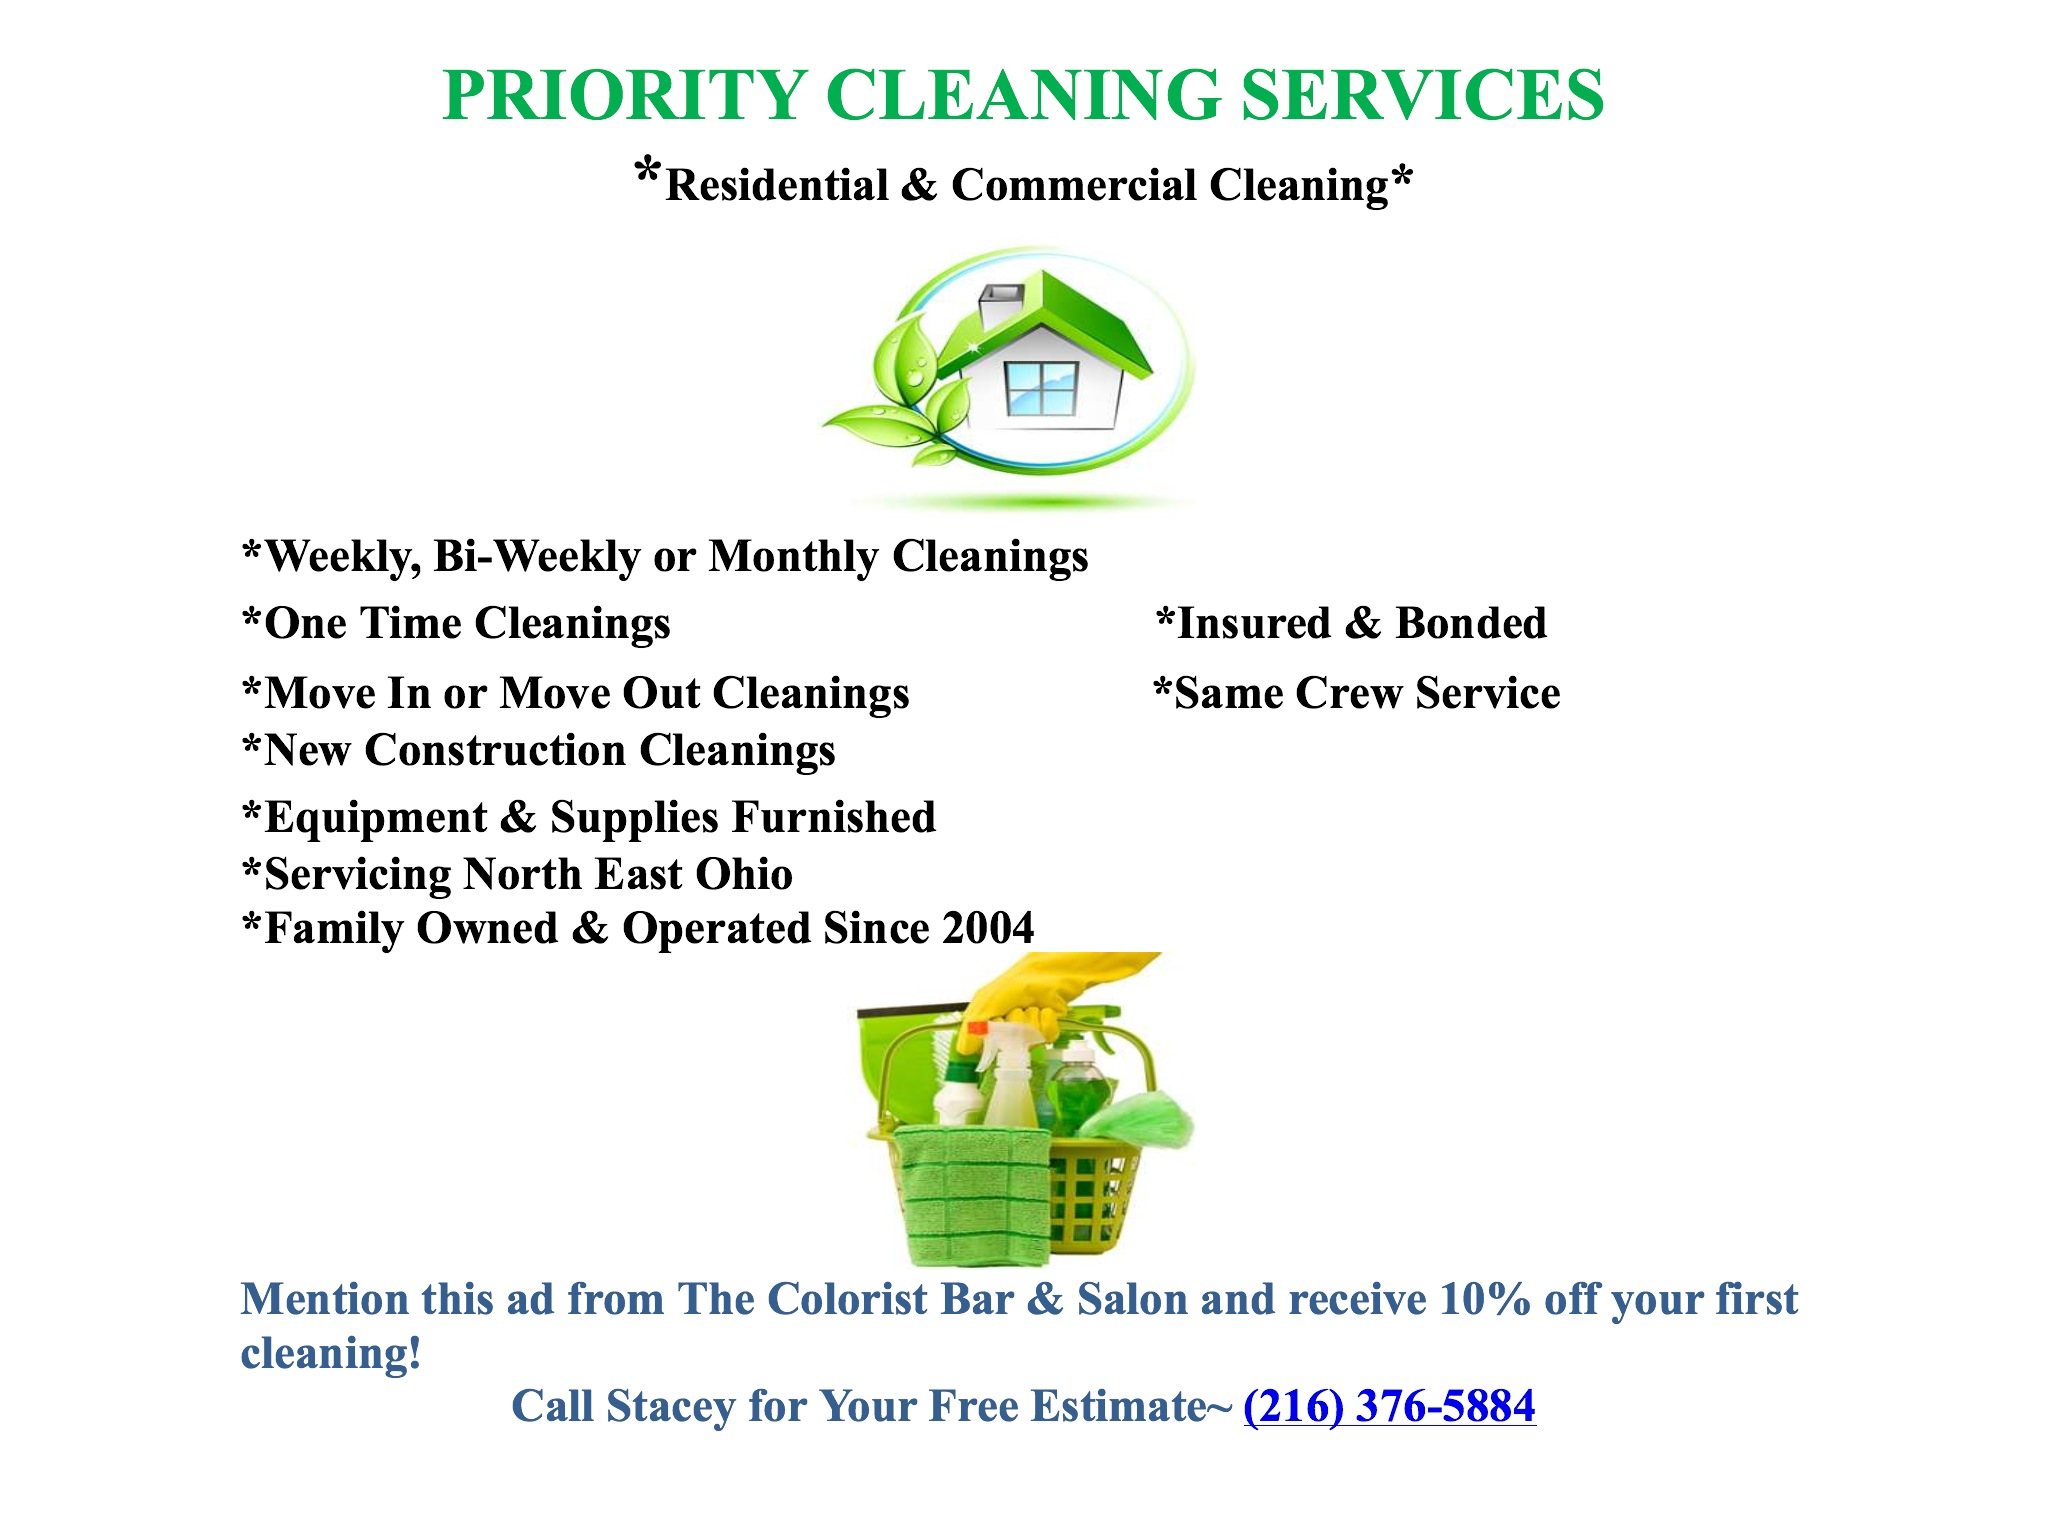 Priority Cleaning Services Discount partnership with The Colorist Bar & Salon